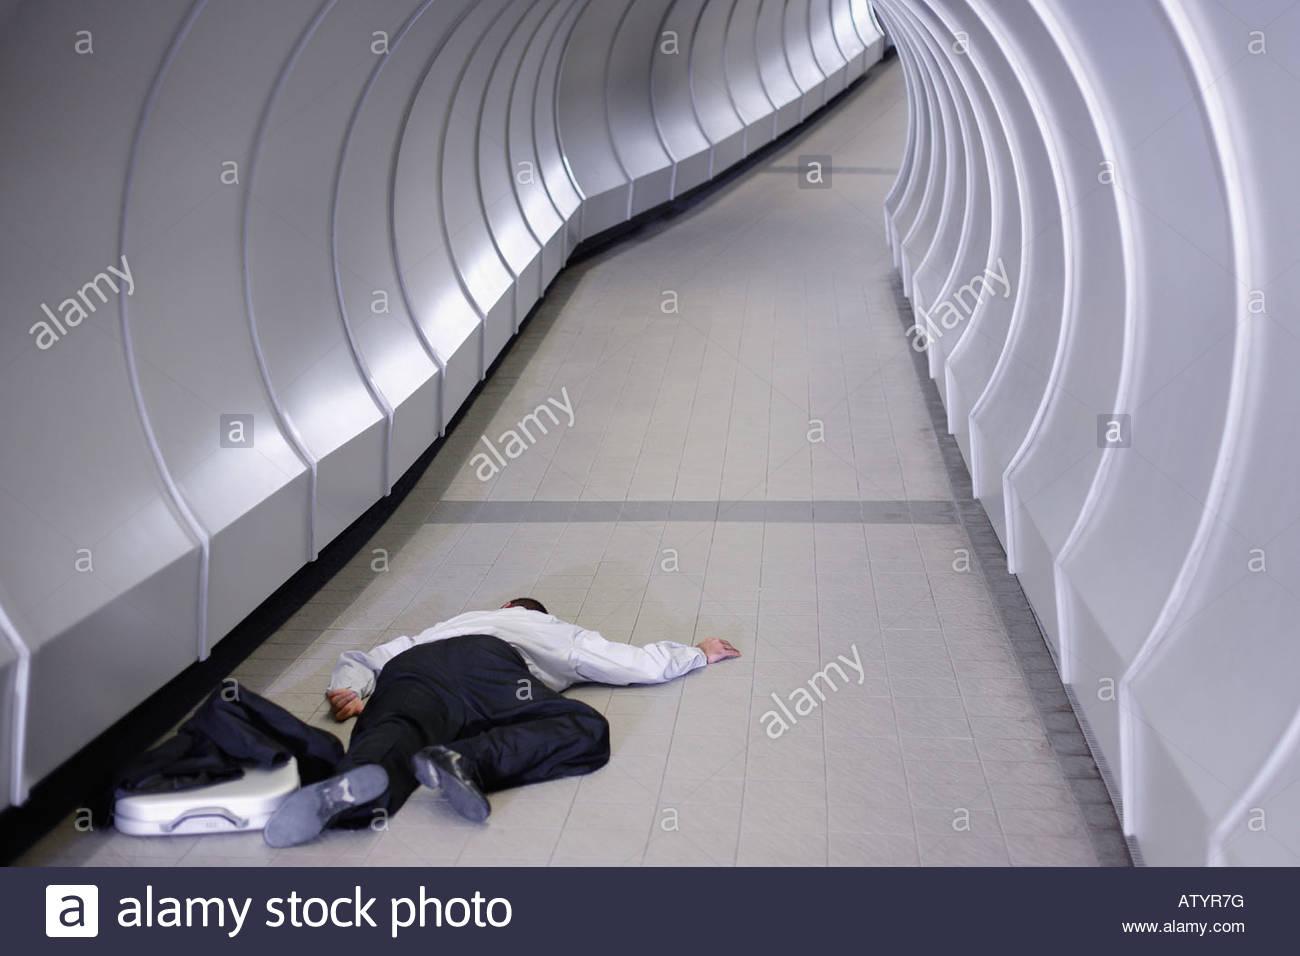 Businessman passed out in corridor - Stock Image